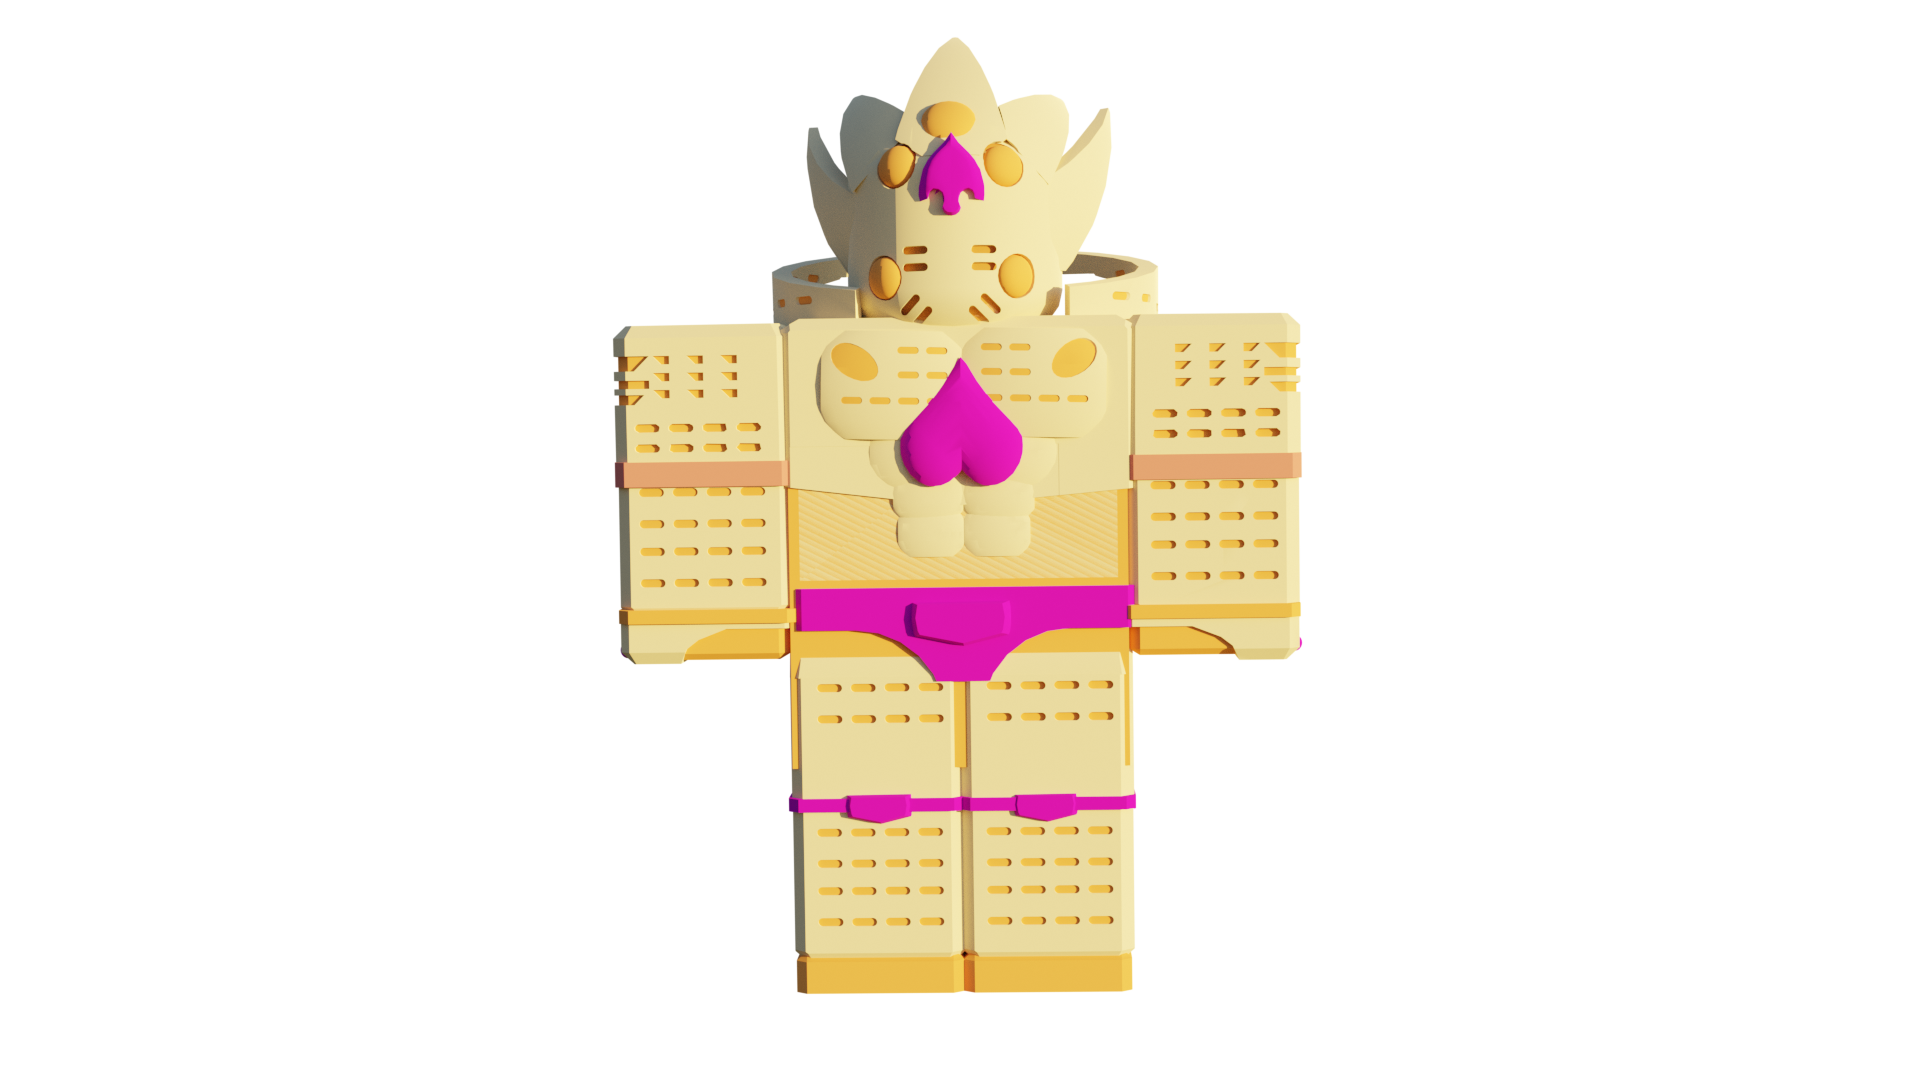 Gold Experience Requiem Jojo Blox Wiki Fandom Hello and thank you for reading this article! gold experience requiem jojo blox